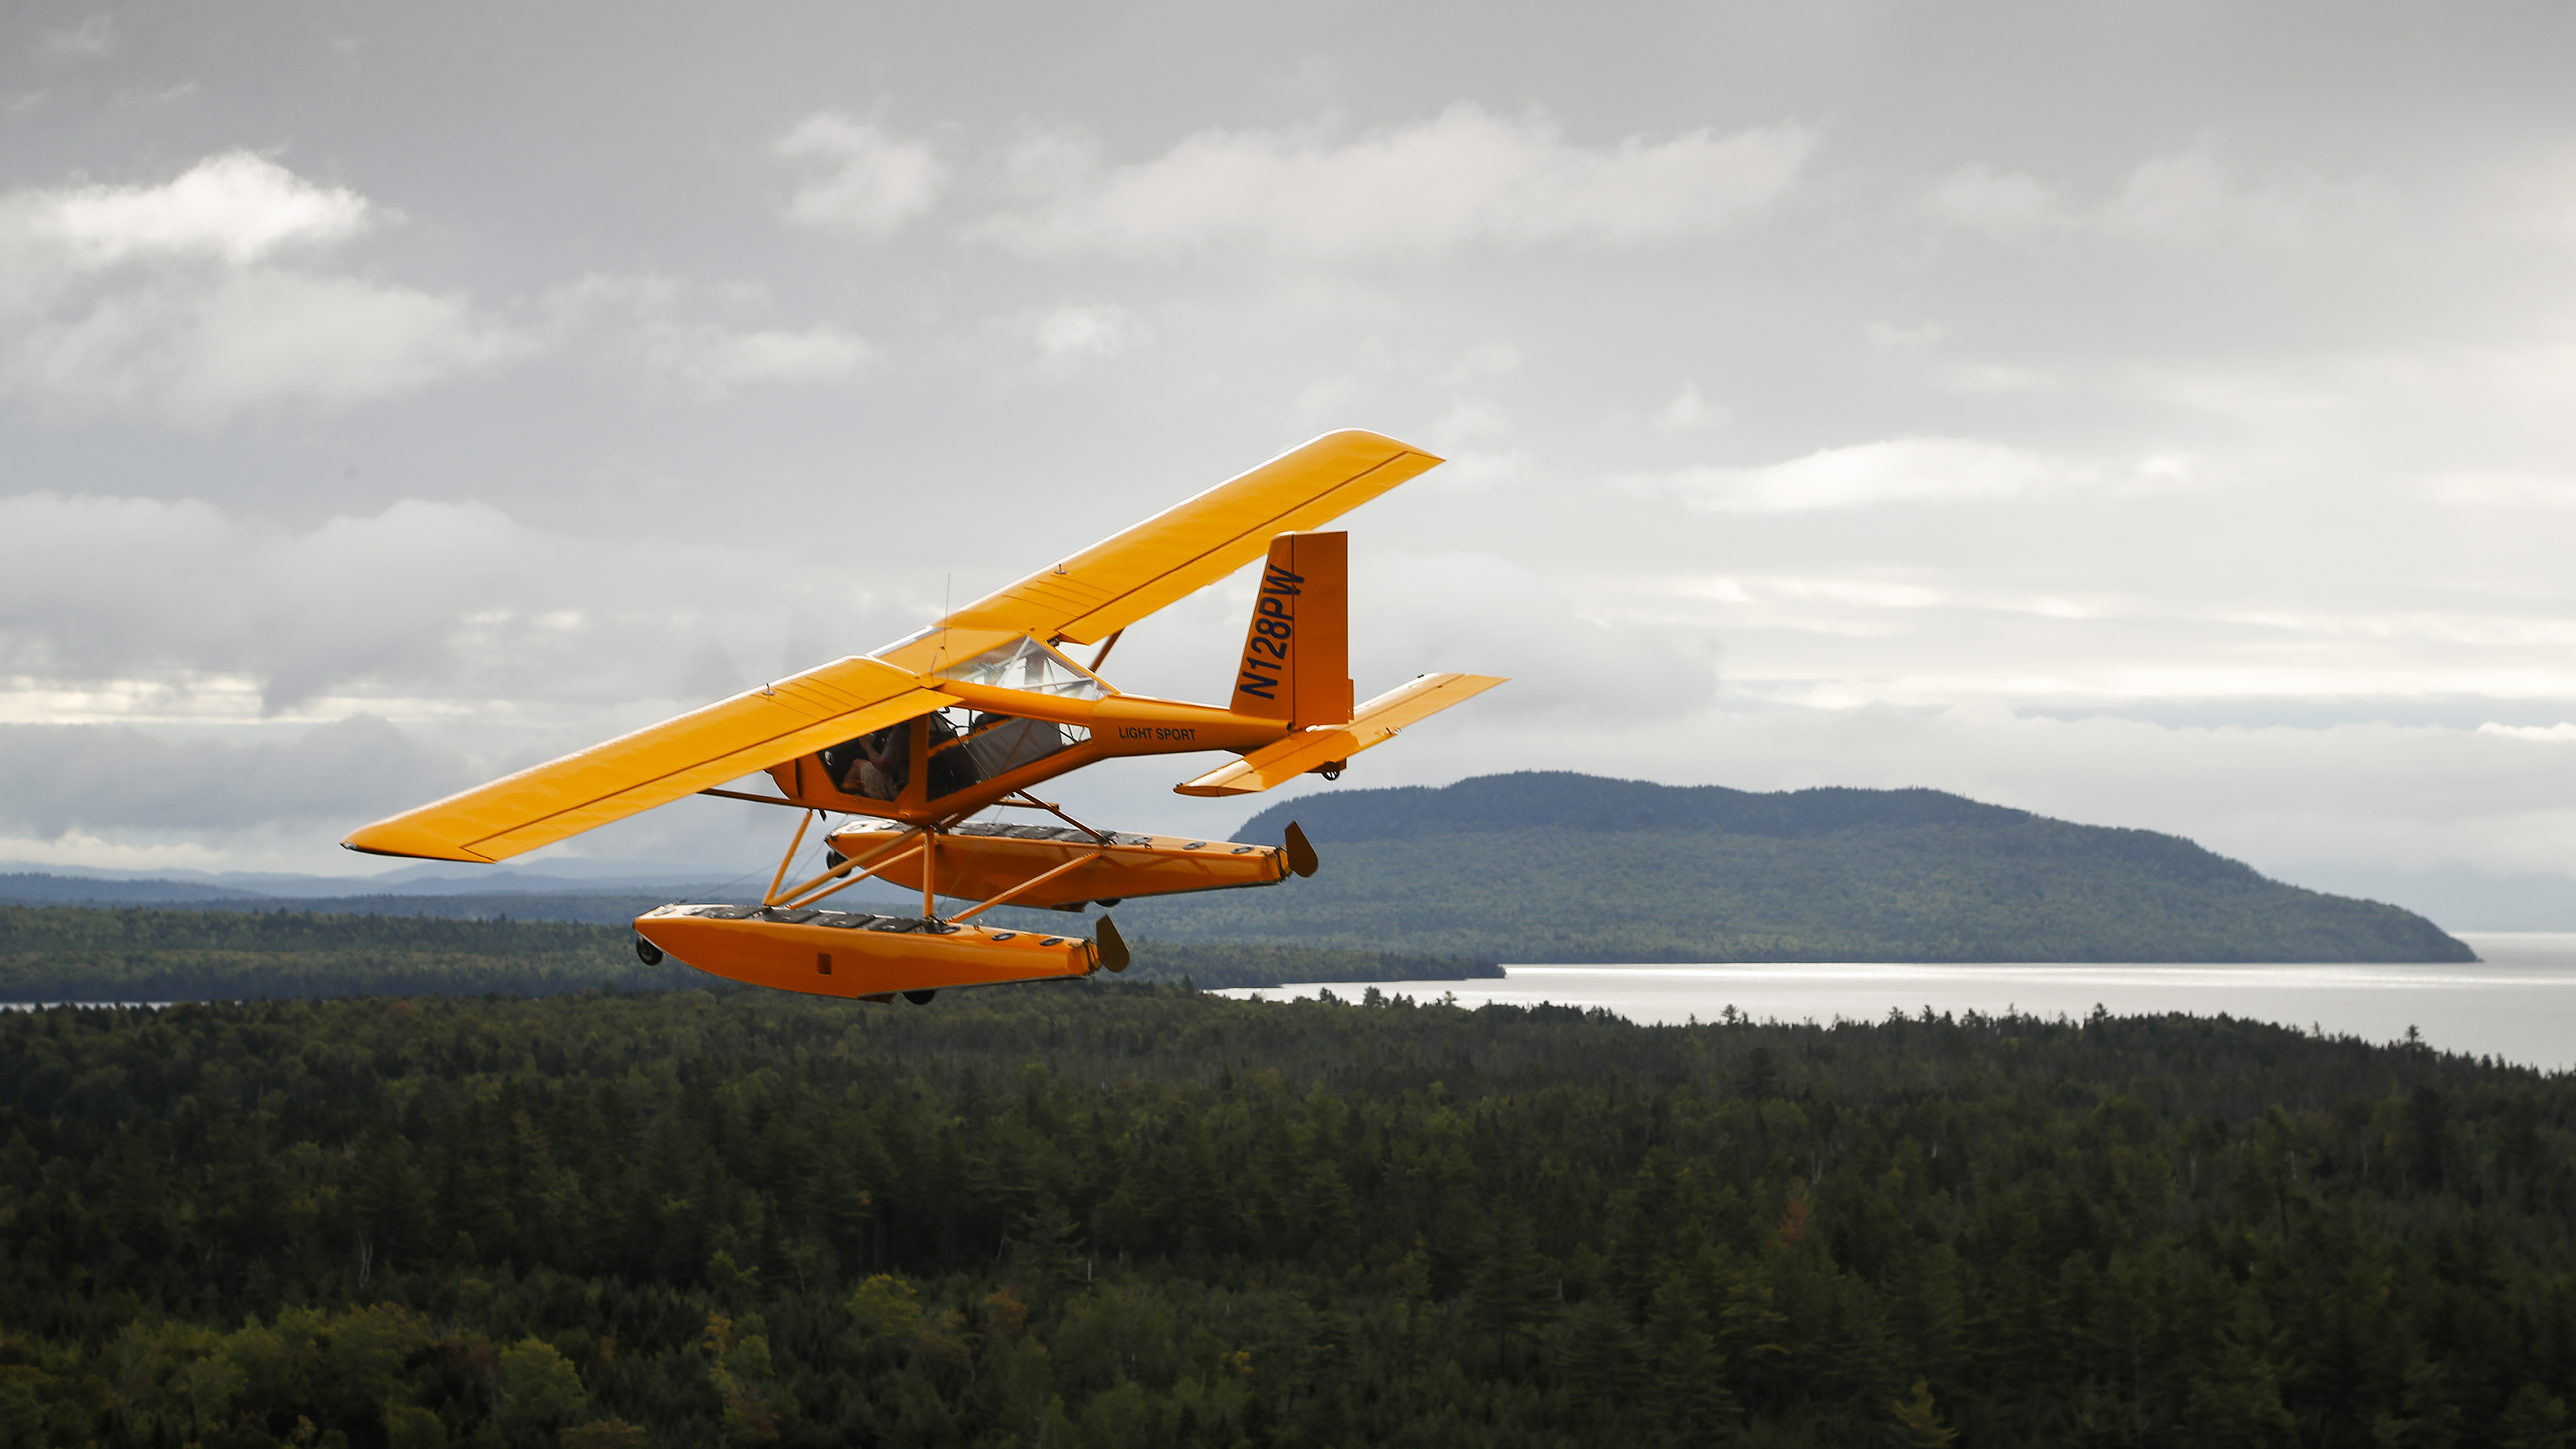 A seaplane flies over Maine's remote landscape heading to Greenville for the International Seaplane Fly-In at Moosehead Lake. Photo by Chris Rose.